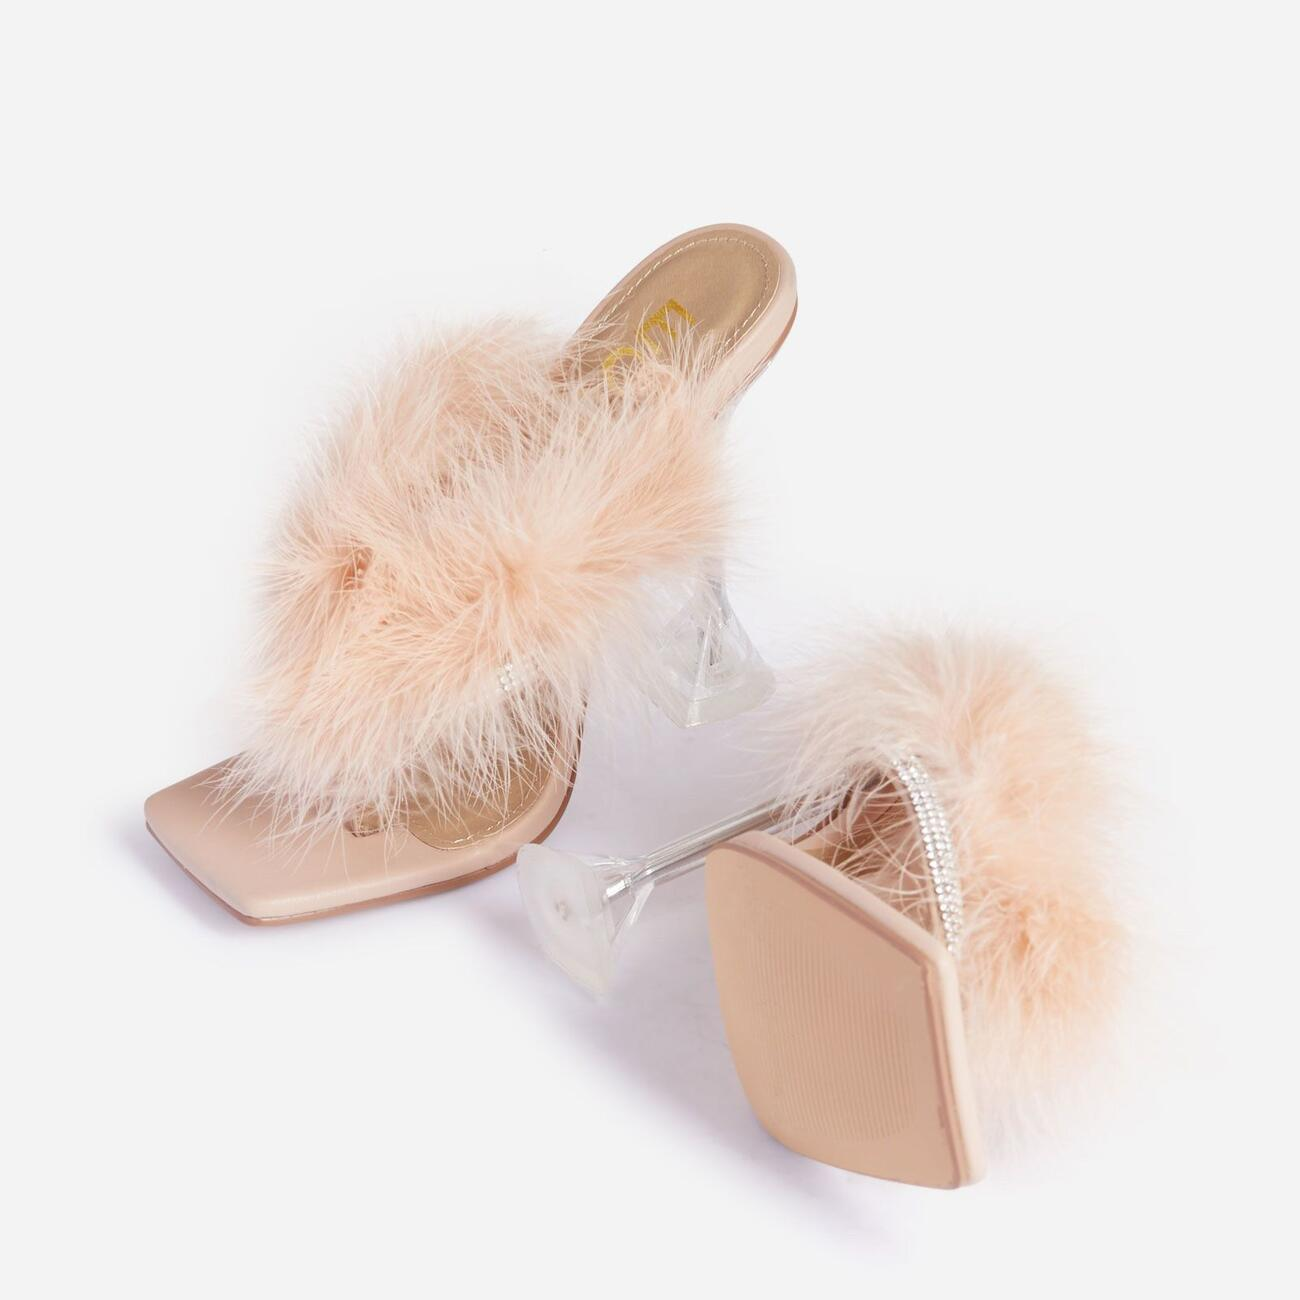 Rich-AF Diamante Detail Fluffy Square Toe Clear Perspex Pyramid Heel Mule In Nude Faux Leather Image 4